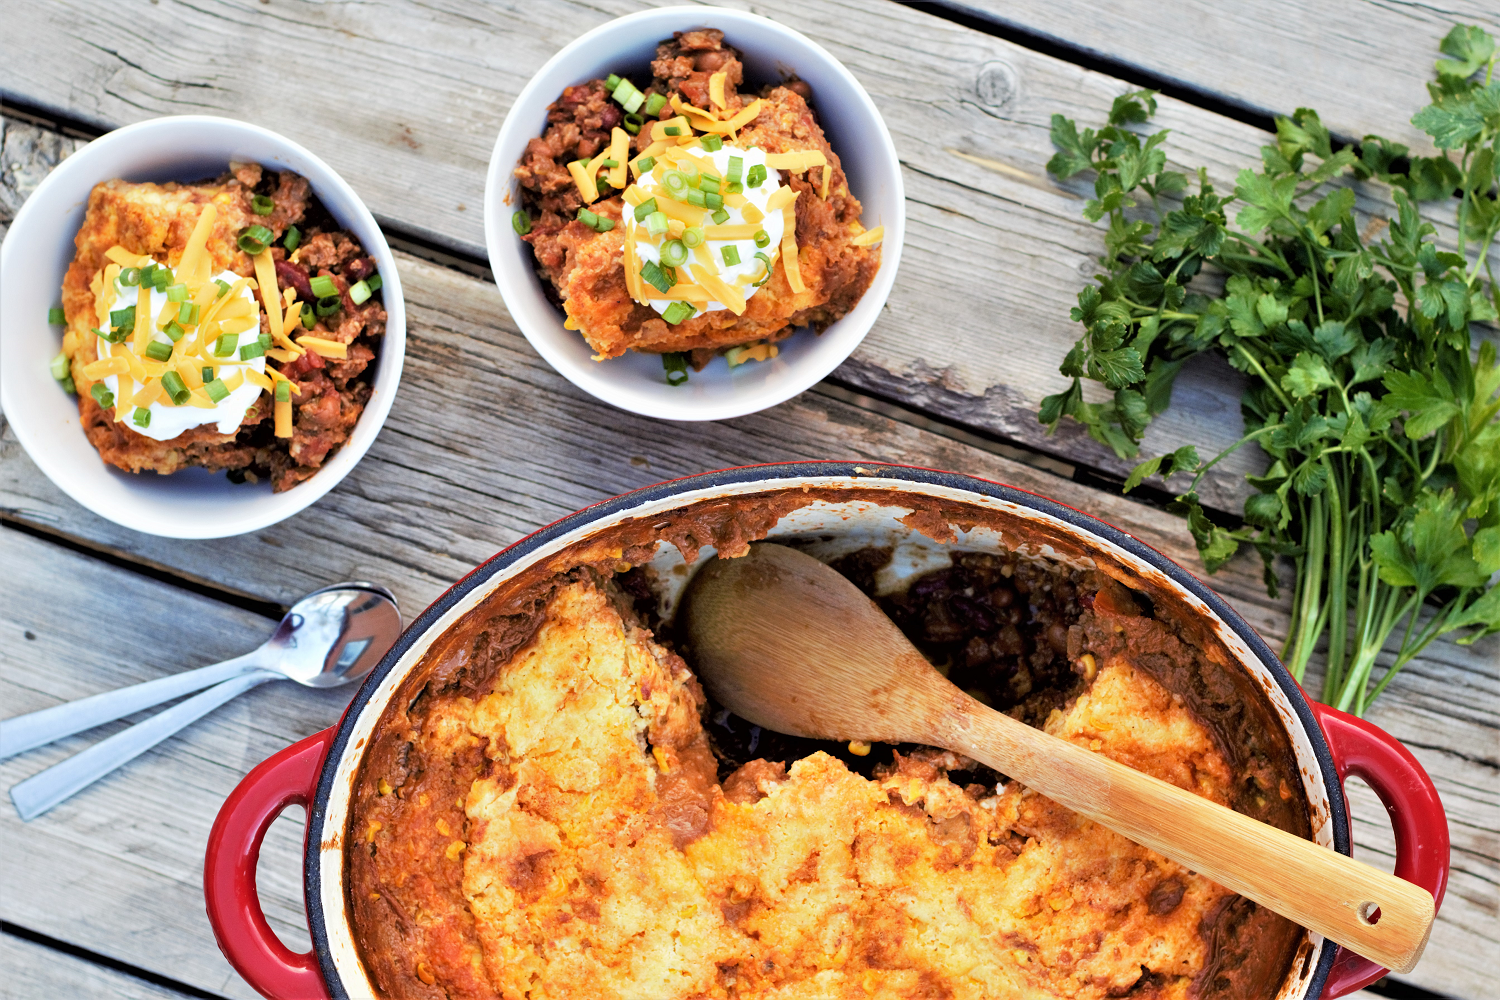 My forever-go-to comfort food chili, super thick and loaded up, made even better by baking creamy, corn-studded cornbread right on top.